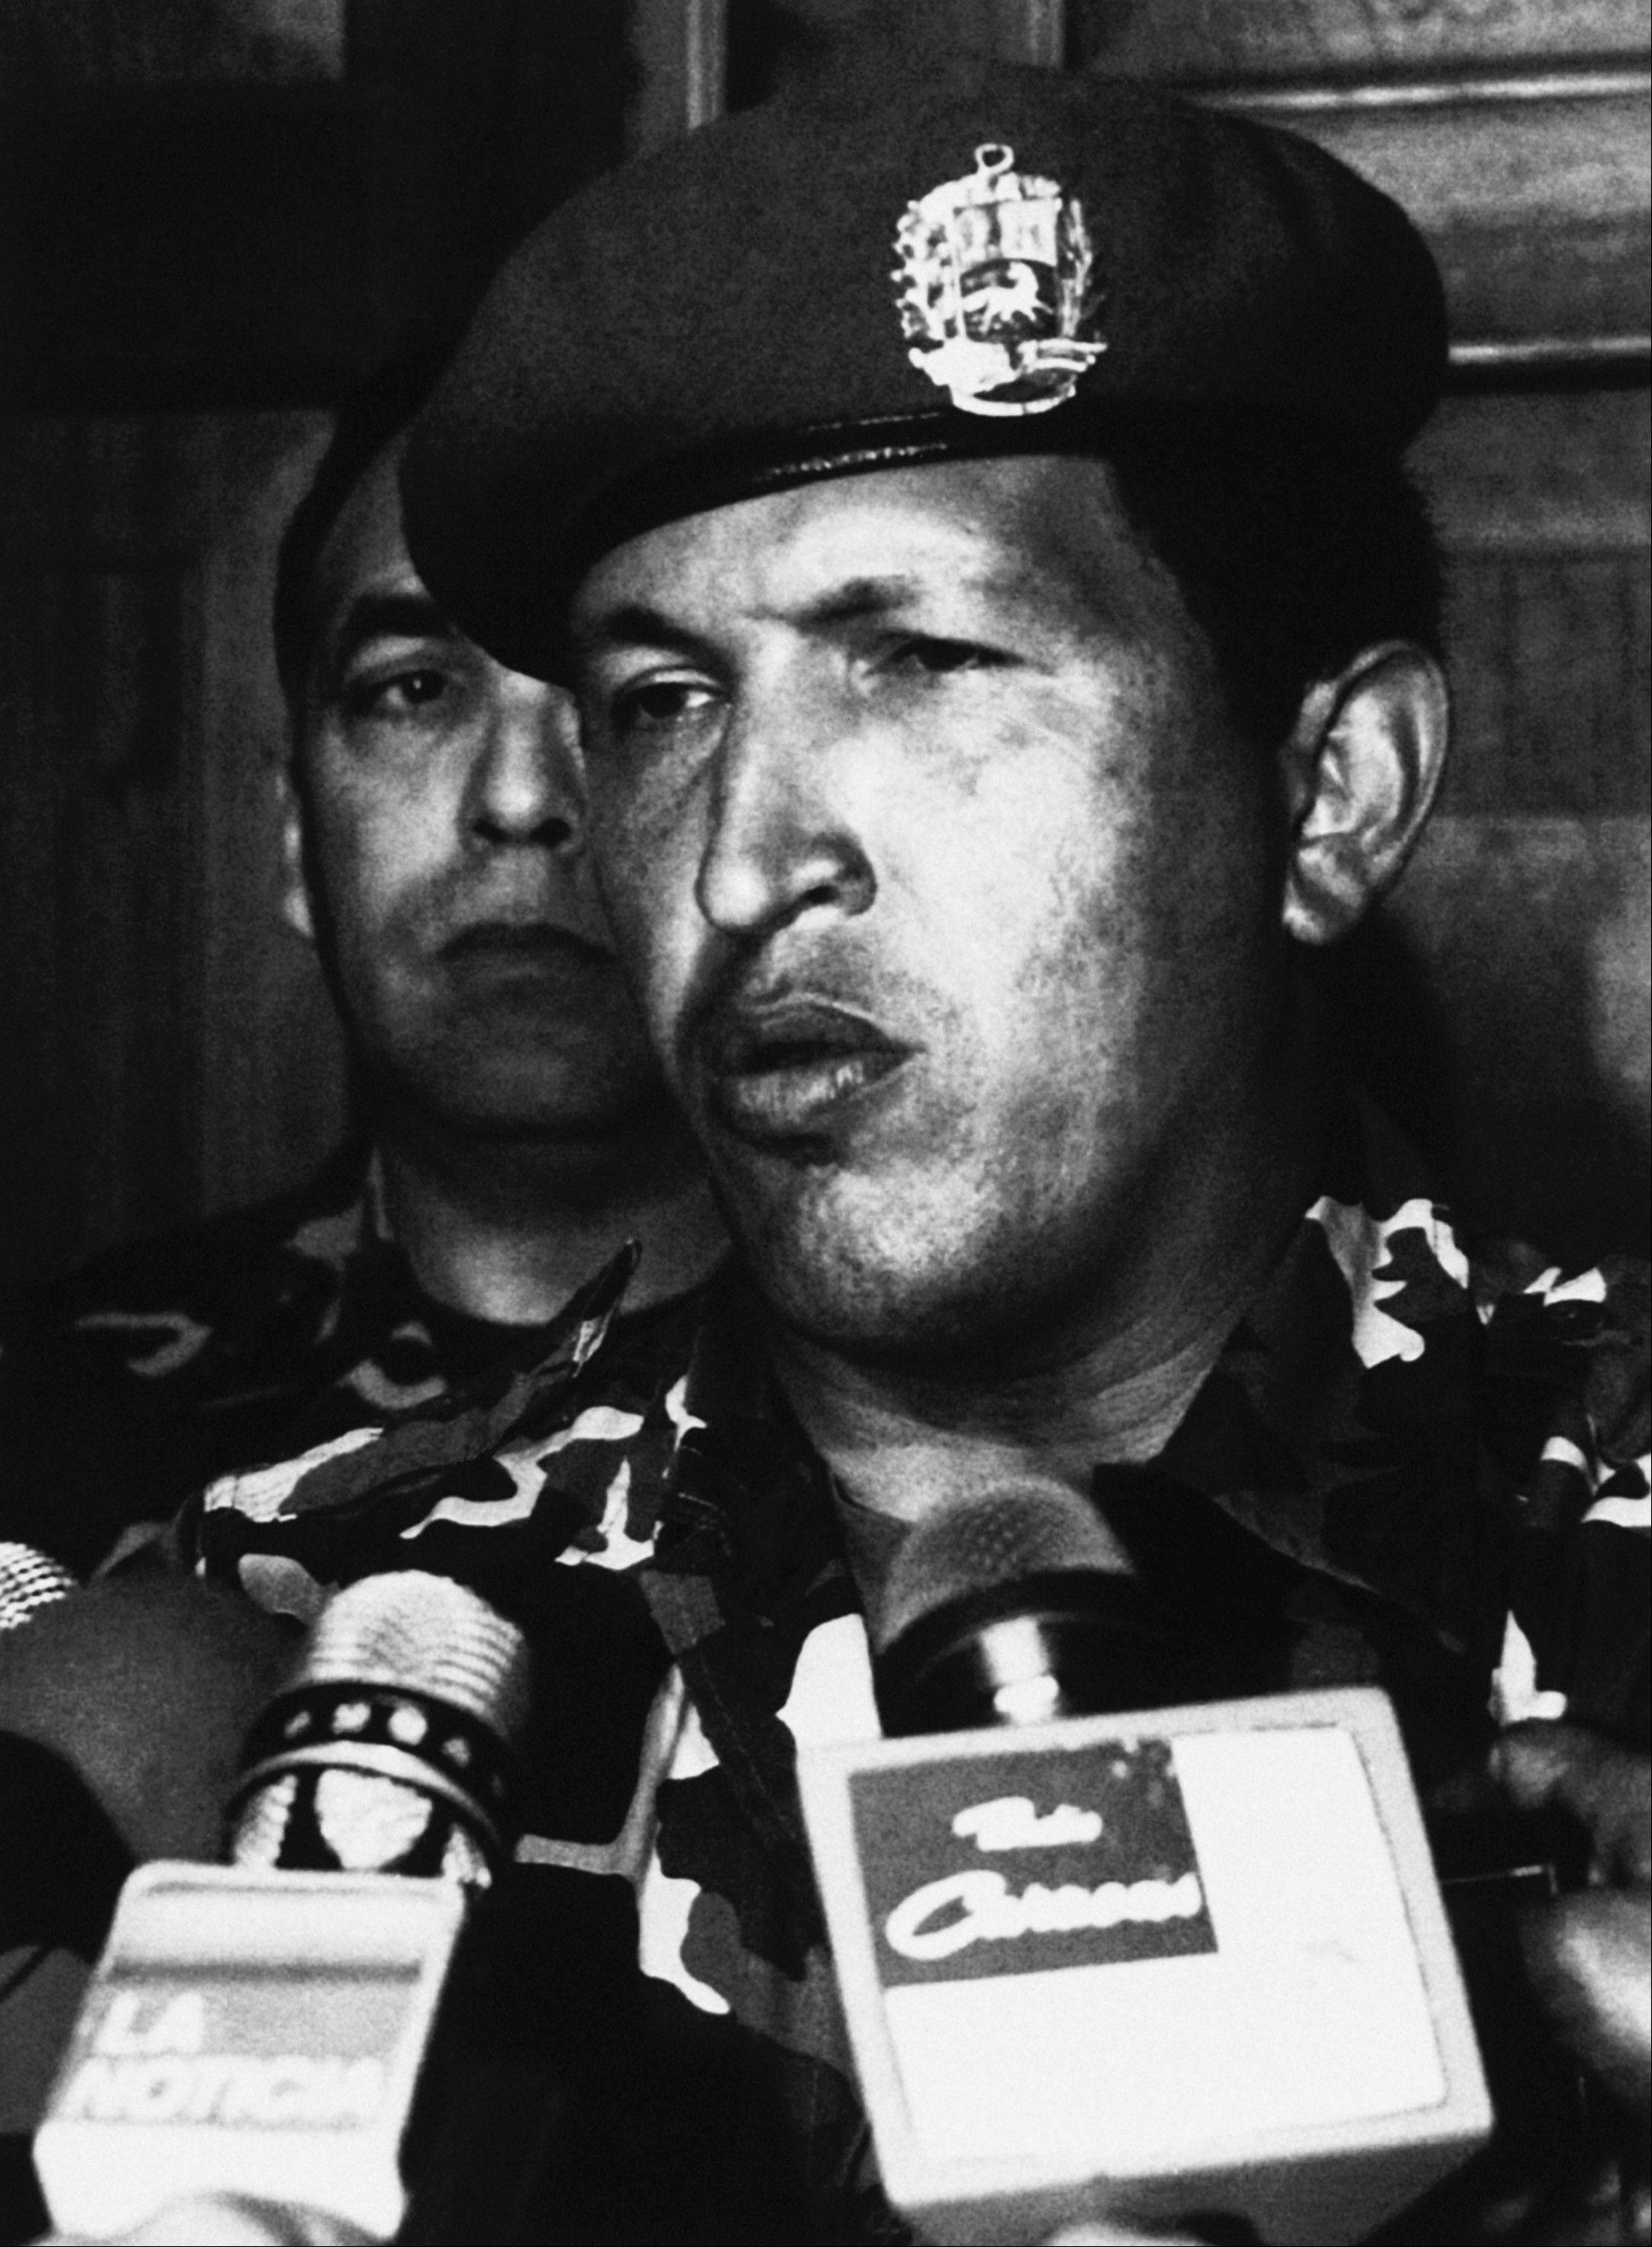 In this Feb. 4, 1992 file photo, paratroop commander Hugo Chavez talks to reporters at the Defense Ministry after he surrendered to the troops loyal to the government of Carlos Andres Perez in Caracas, Venezuela. Chavaz surrendered in the western city of Valencia and was transported to Caracas, where he called his followers to give up their arms.